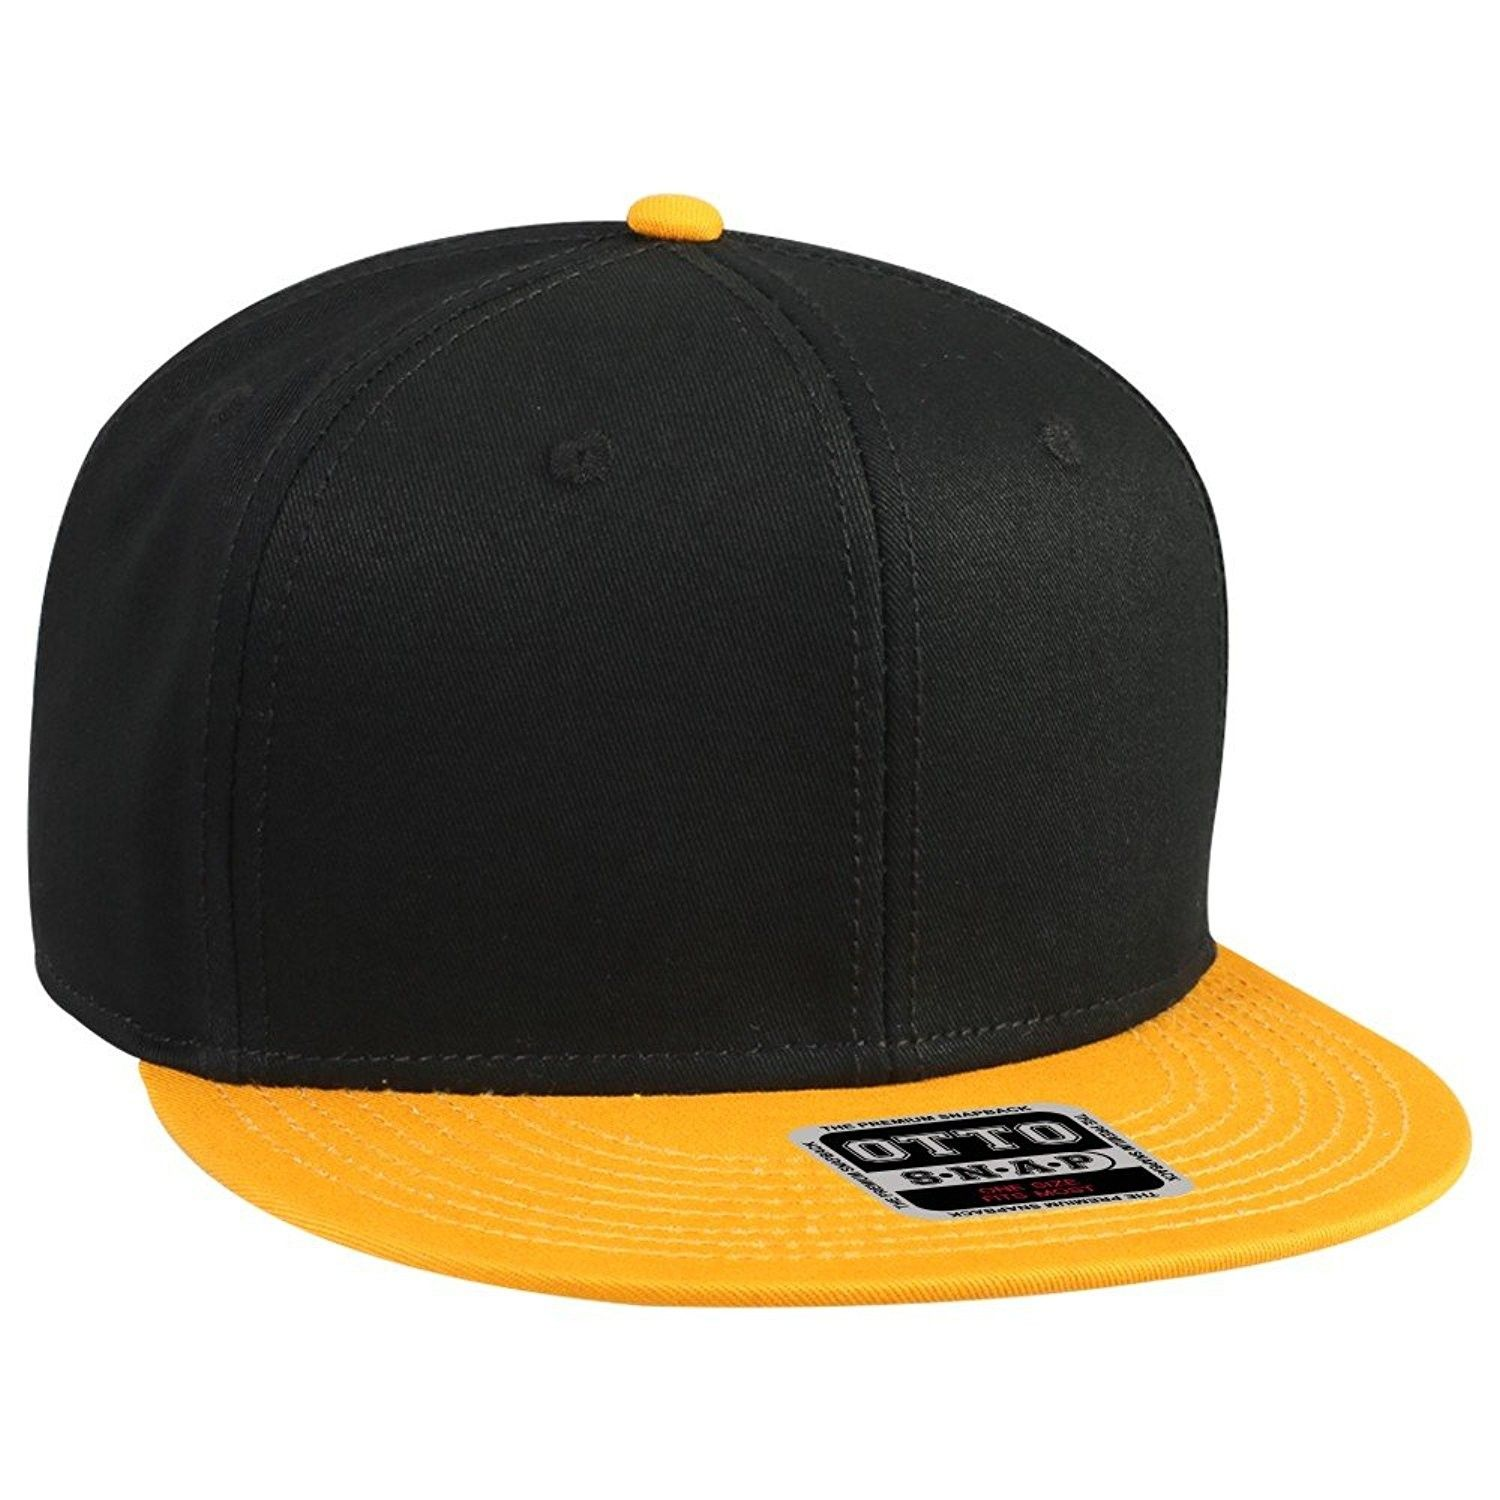 63fc6635 Otto Snap Cotton Twill Round Flat Visor 6 Panel Pro Style Snapback Hat -  Gld/Blk/Blk - CR12FN5VYW1 - Hats & Caps, Men's Hats & Caps, Visors #hats # caps ...